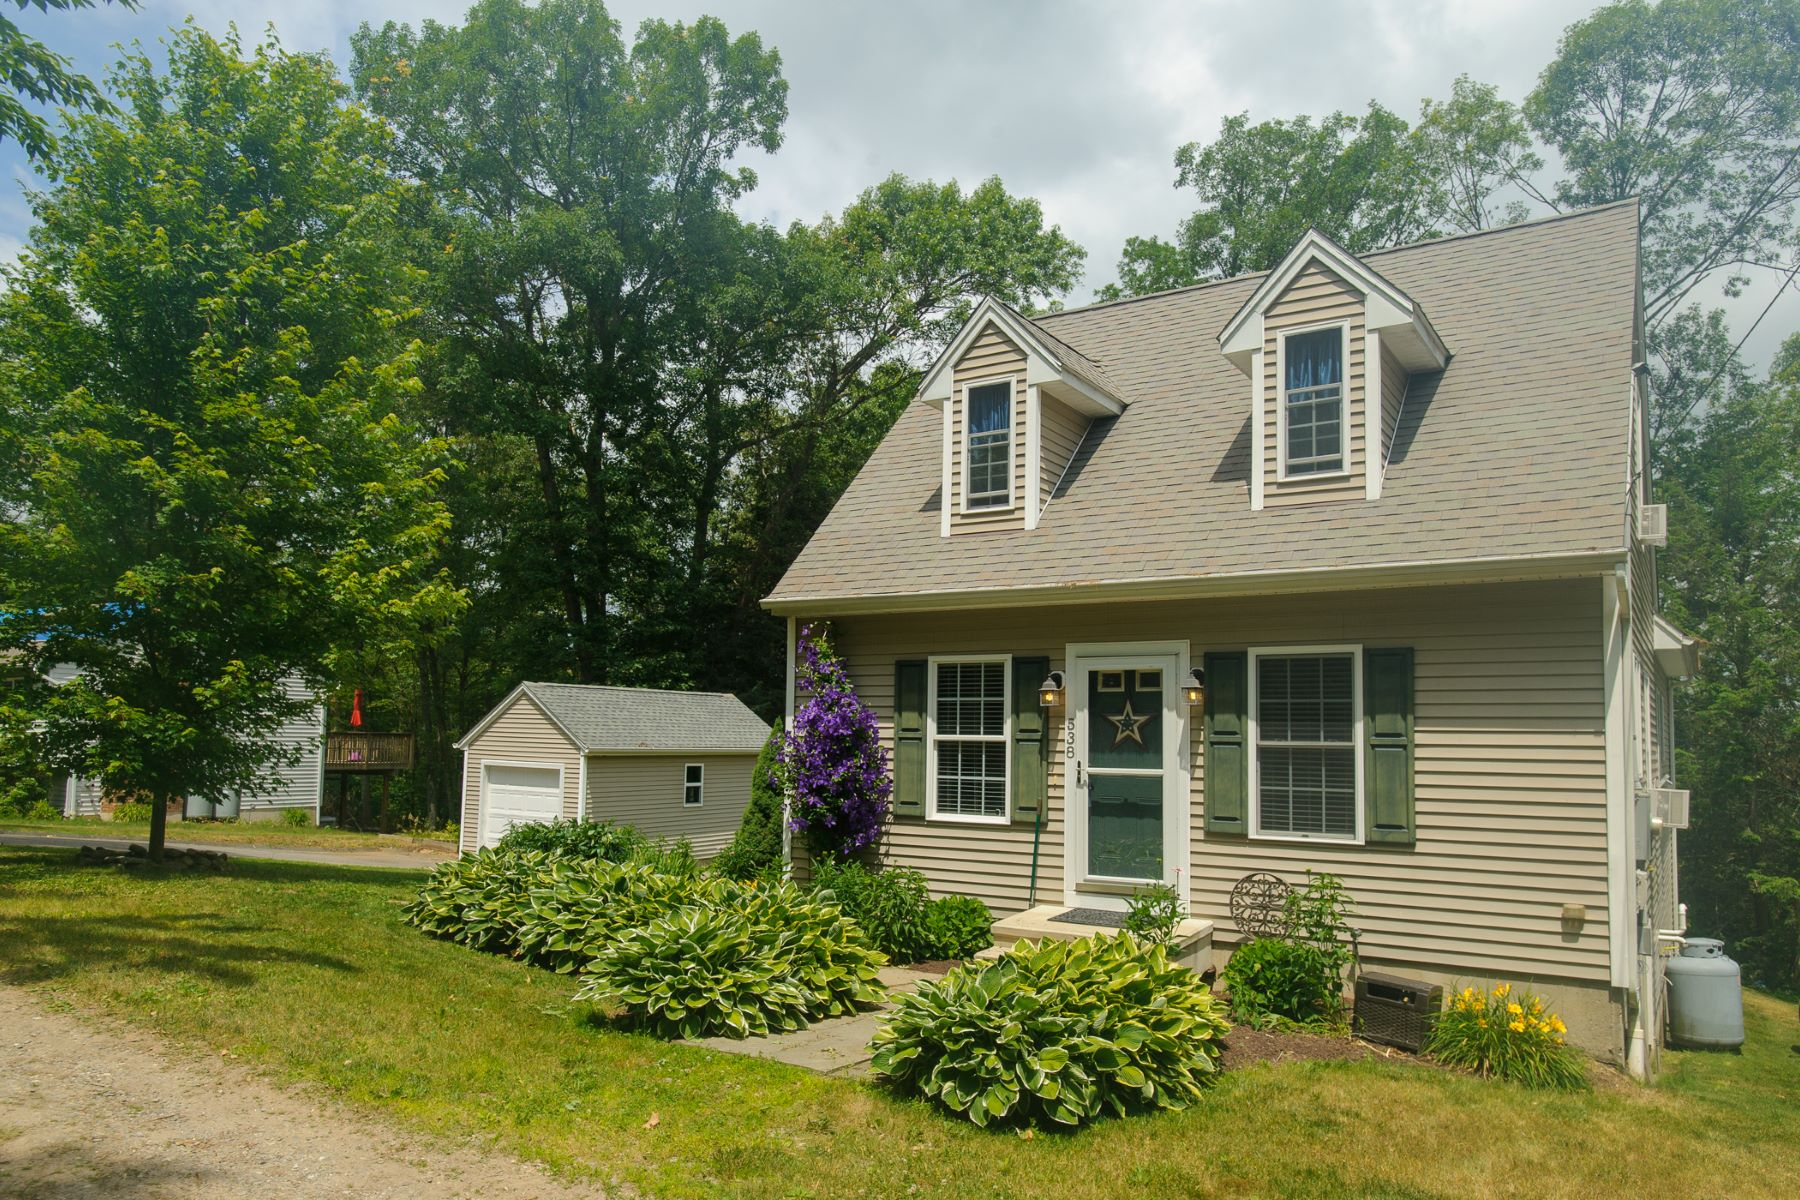 Single Family Home for Sale at Charming Cape Cod 538 Berkshire Rd Southbury, Connecticut 06488 United States